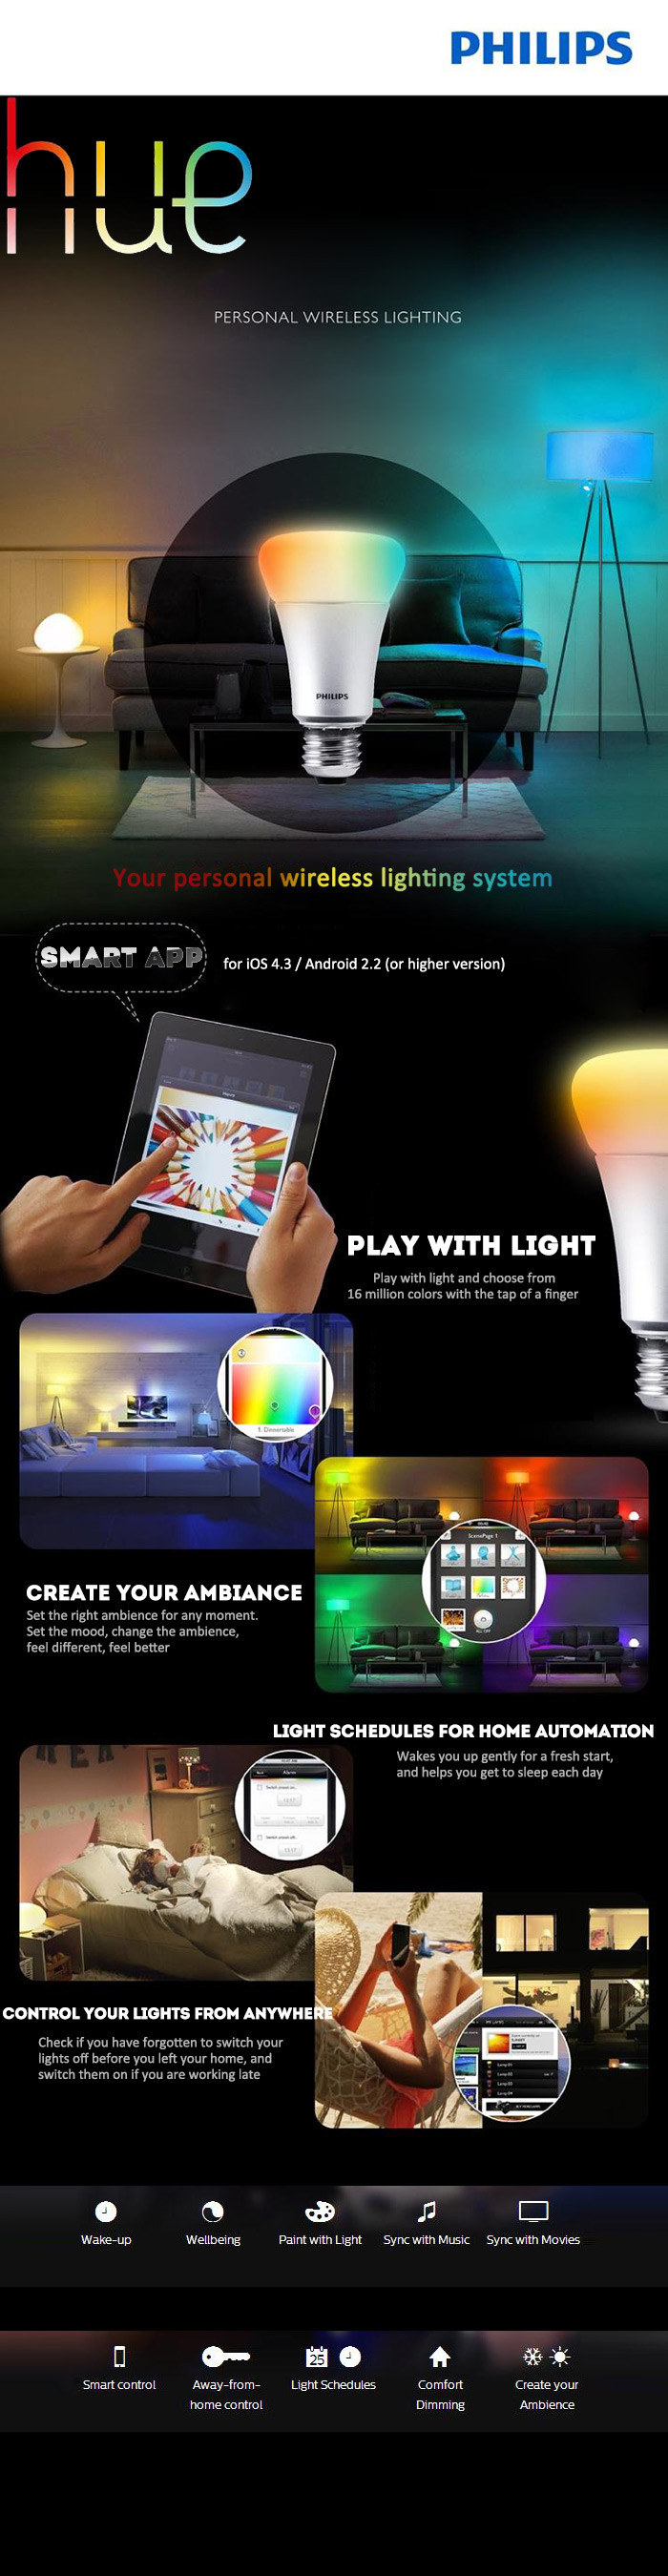 Philips Hue Wireless Control Smart Led Bulb E27 85w Ac 220 240v Tail Light Lamp Circuit Board W Bulbs Left Or Right Fits 0206 Once Youve Set Up Your System You Can Go On And Add To 50 Lights Turn Imagination With Find More